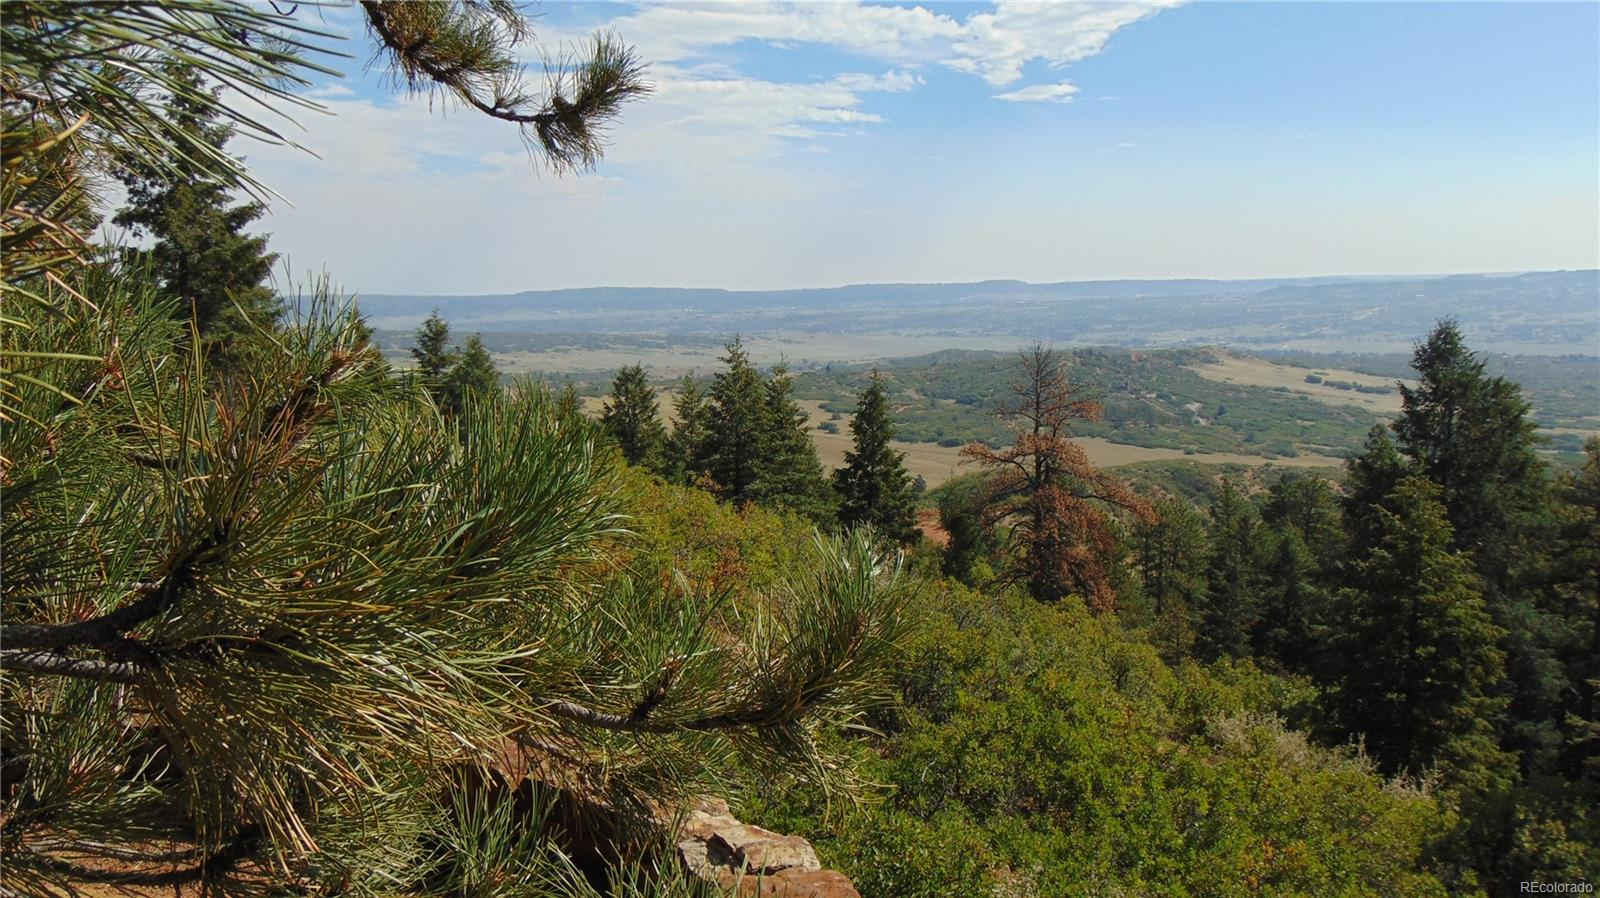 Additional photo for property listing at 52 acre wooded estate off of Jackson Creek Road, with great views of the valley. 7300 Jackson Creek Rd Sedalia, Colorado 80135 United States